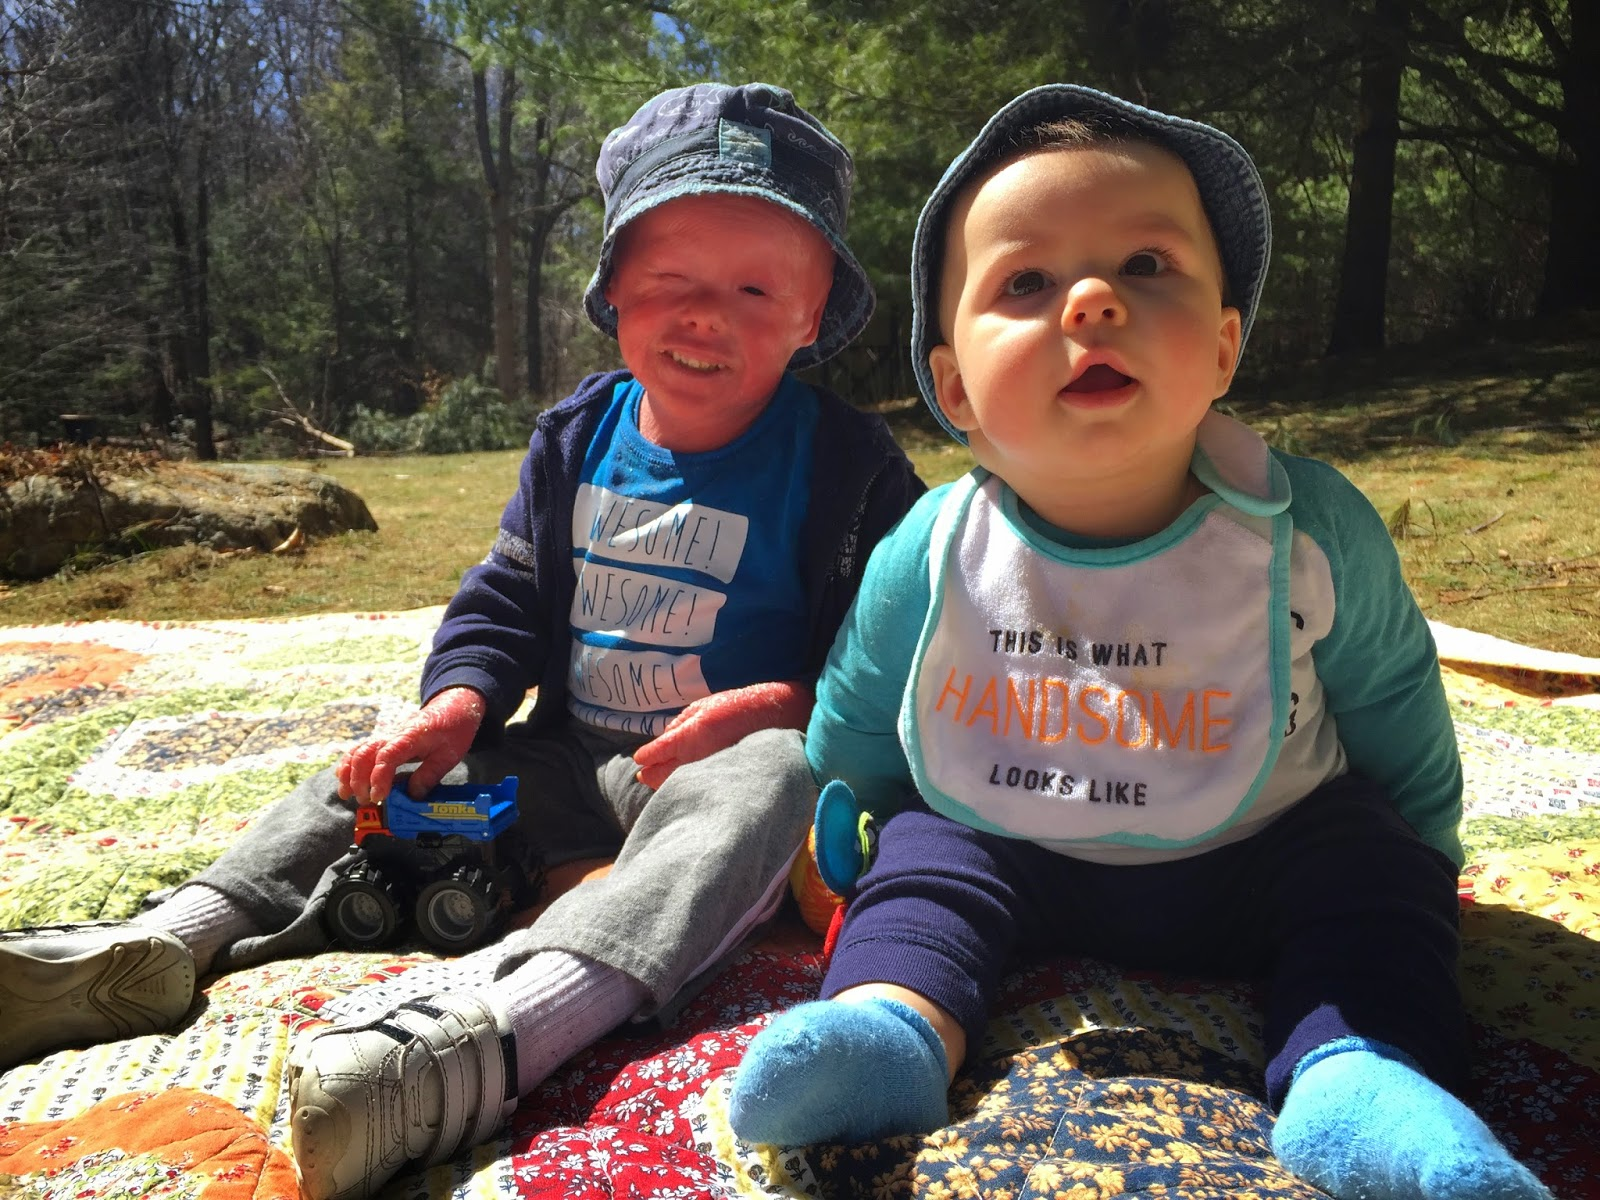 Evan, who has Harlequin Ichthyosis, with his brother